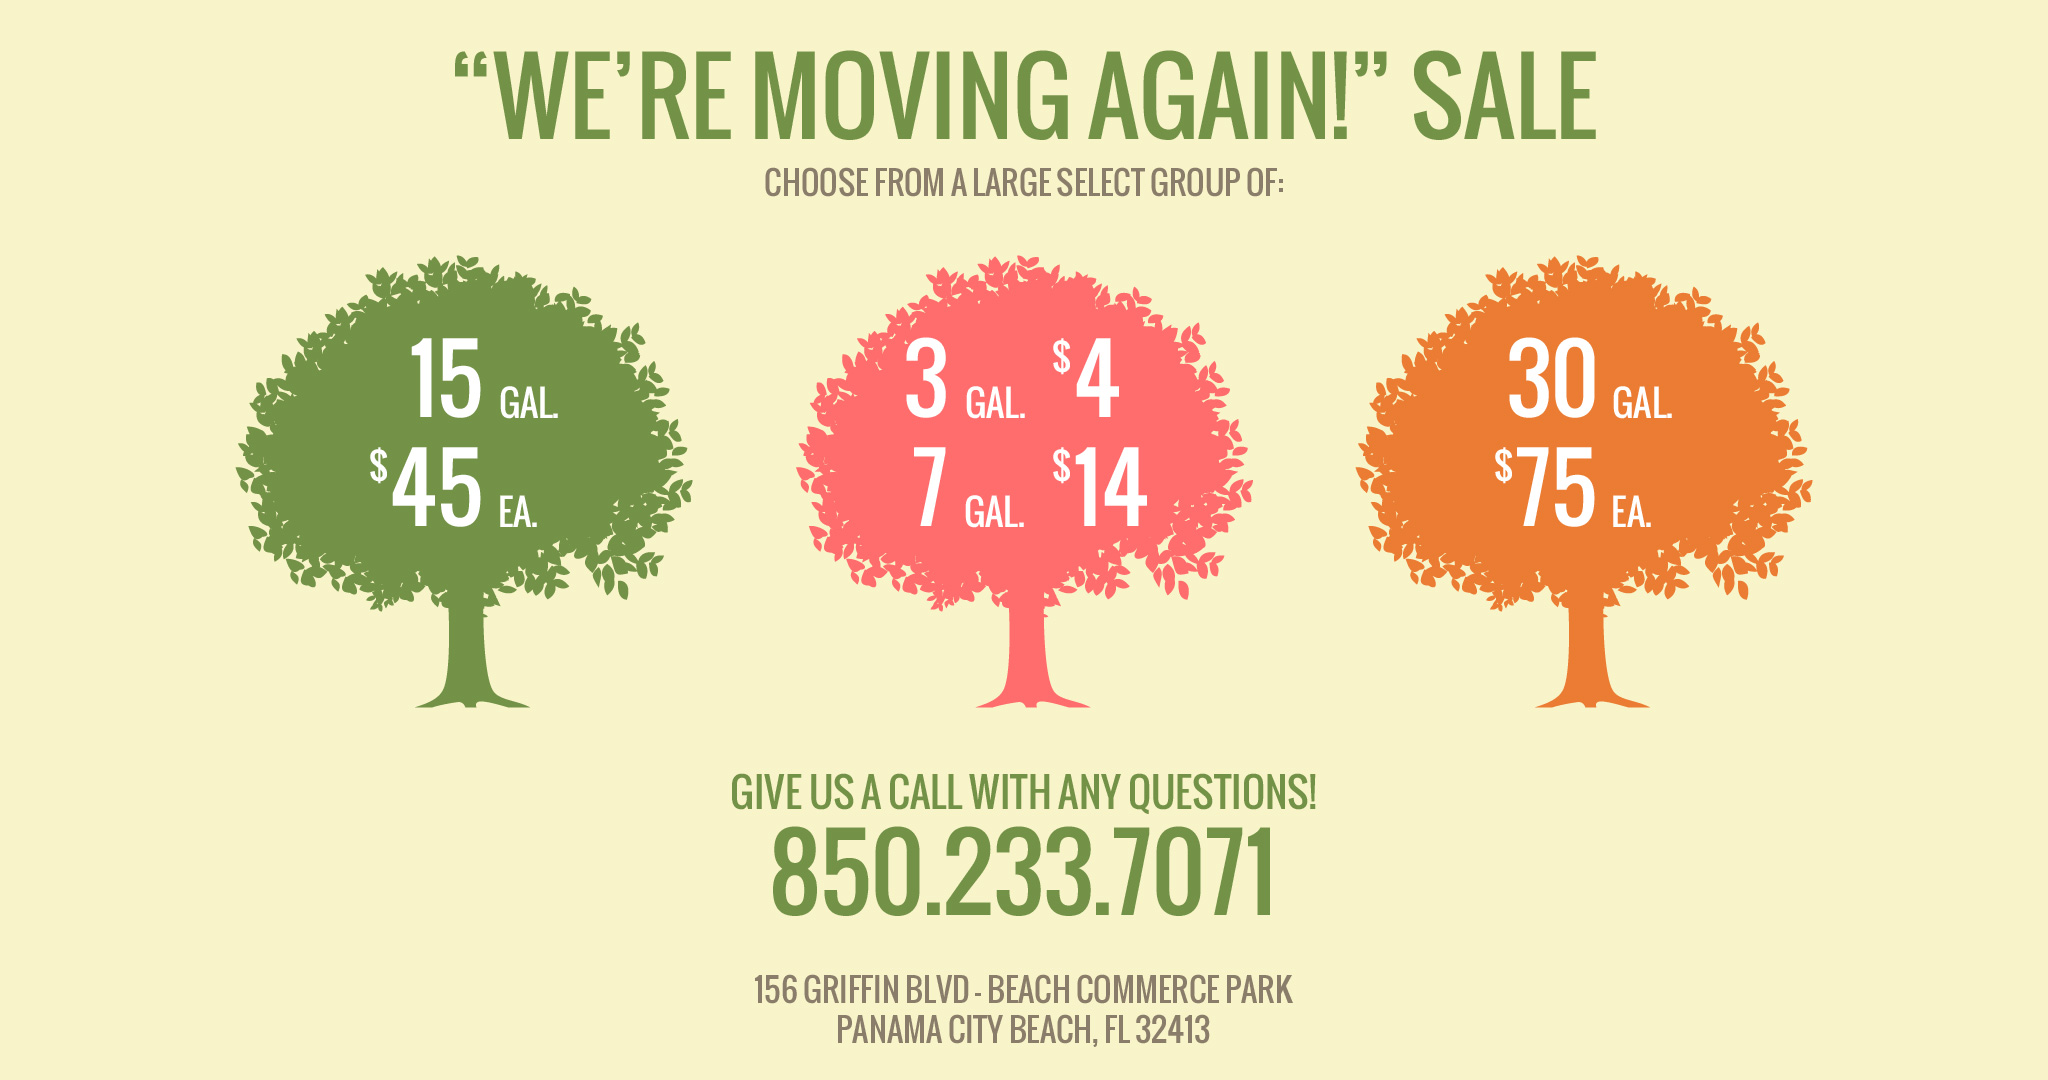 We're Moving Again Sale!